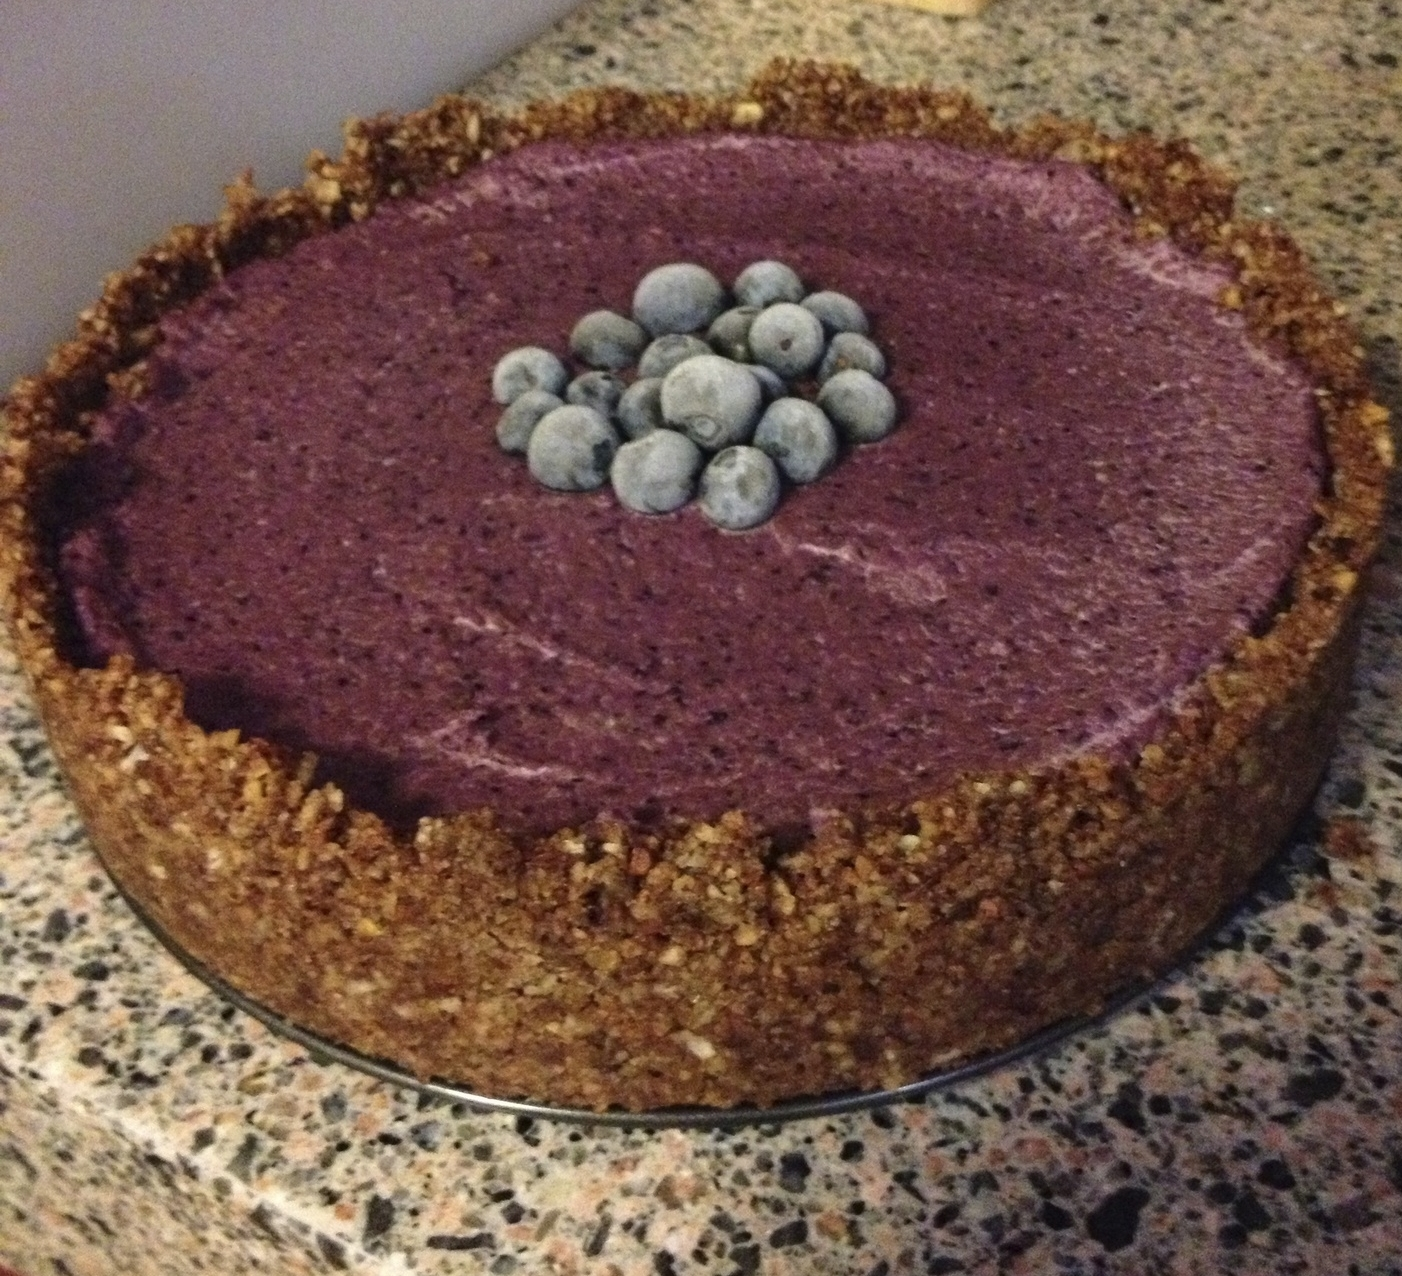 A delicious raw cake from The Real Food Chef cookbook - made last Christmas day.